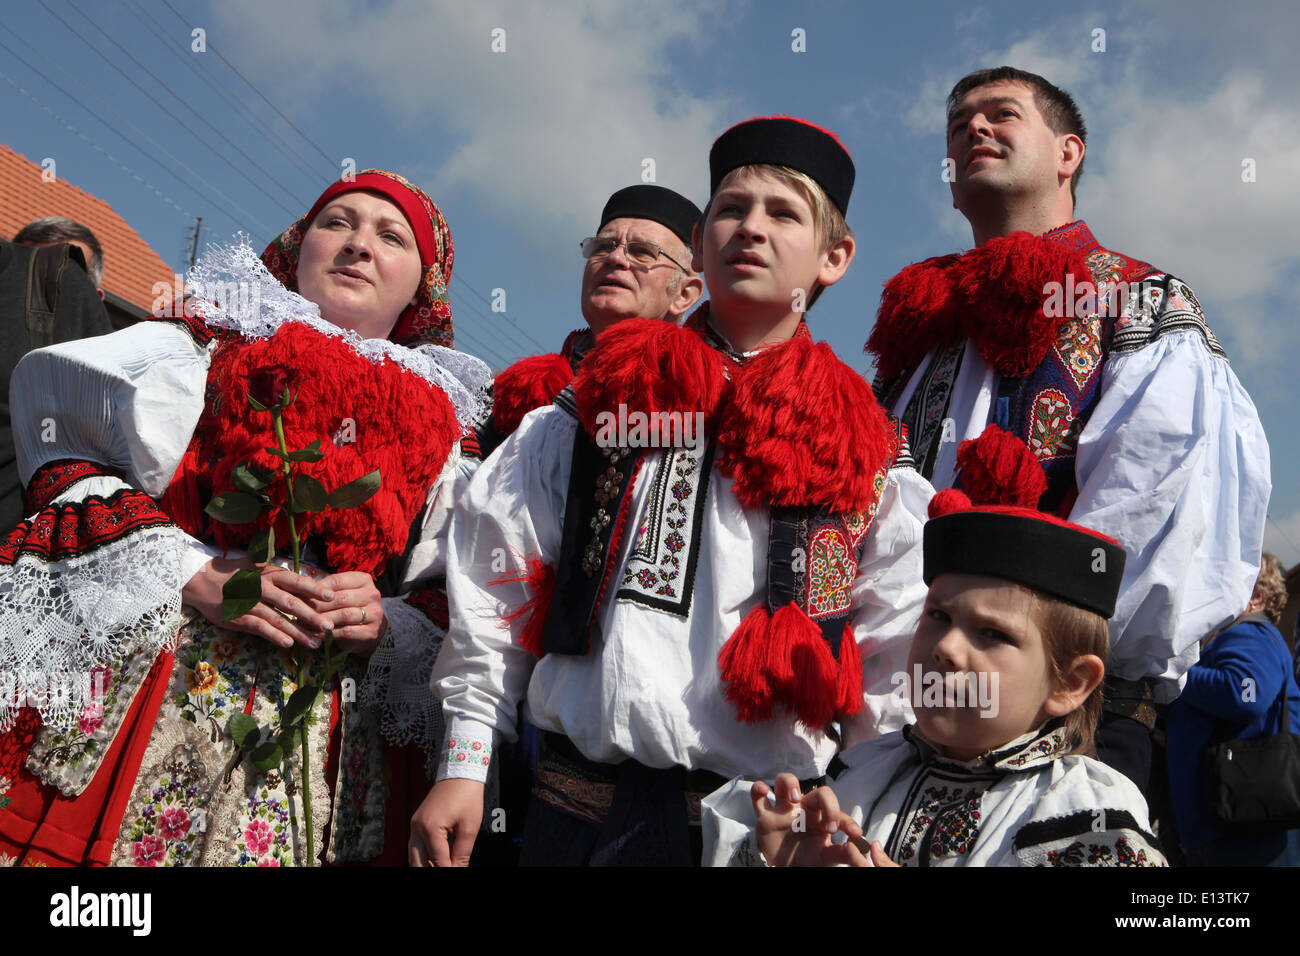 The Ride of the Kings. Traditional folklore festival in Vlcnov, Czech Republic. The boy king with his family. Stock Photo